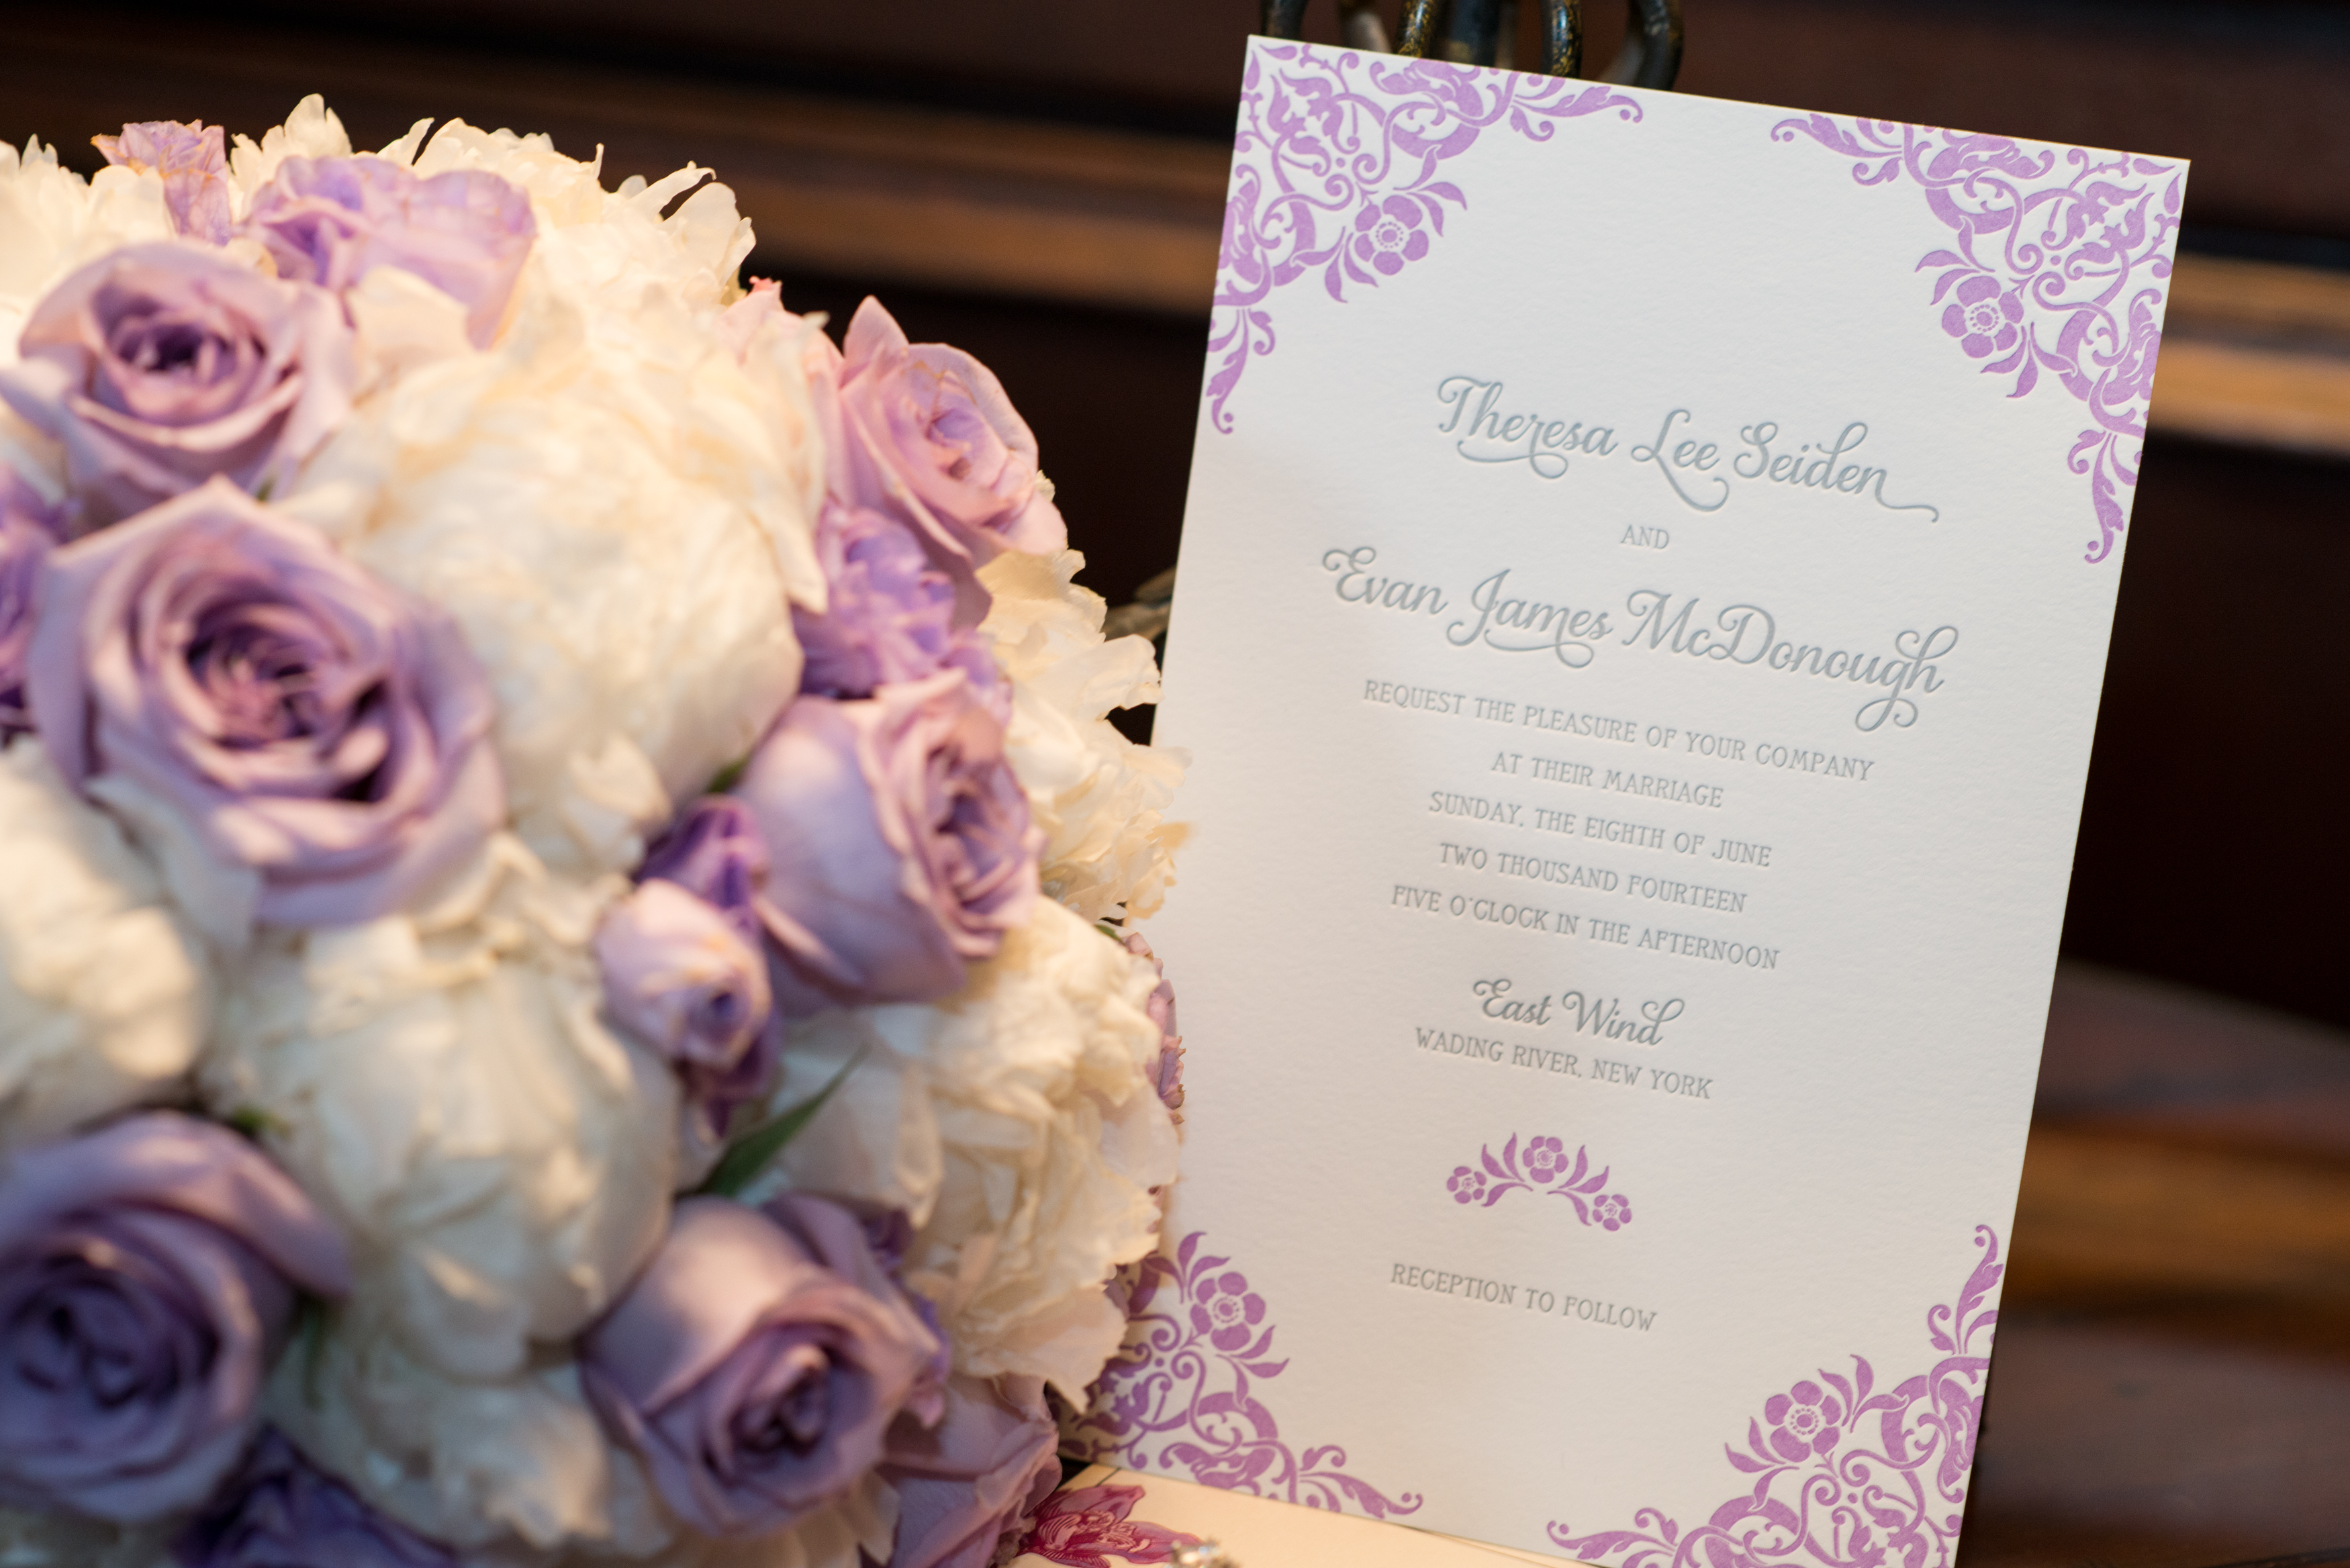 """""""Promise"""" in Lavender by Designer's Fine Promise, Lavender and Gray Letterpress Invitation with Floral Corner Details on Soft White Cotton Paper"""